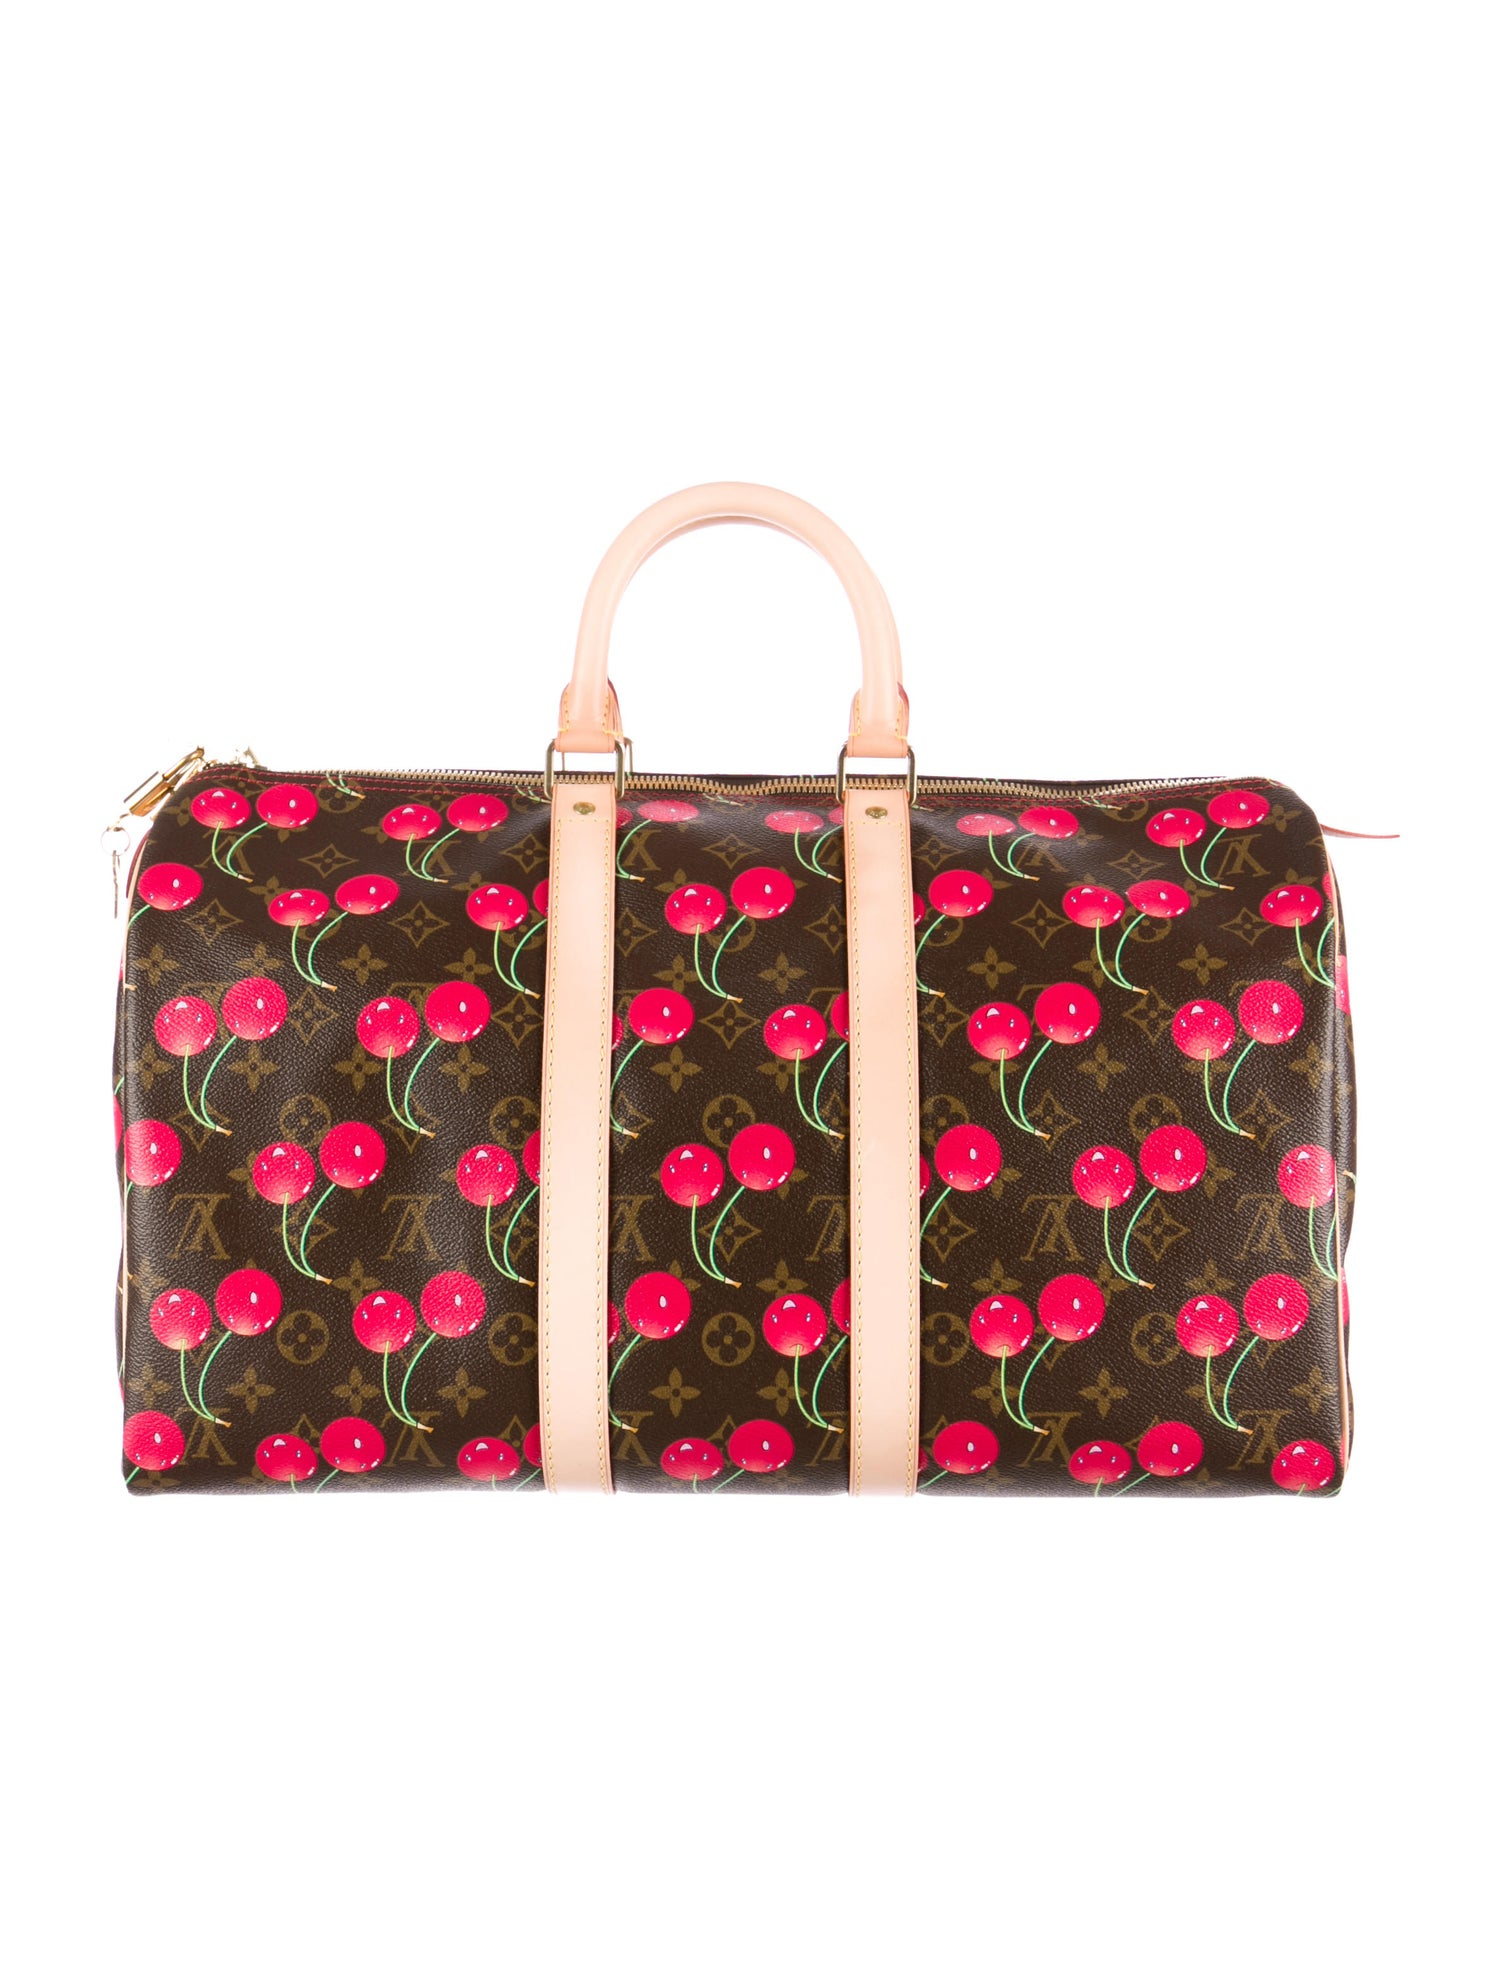 Monogram Cerises Keepall 45 Bag by Louis Vuitton, available on therealreal.com for $1595 Bella Hadid Bags Exact Product